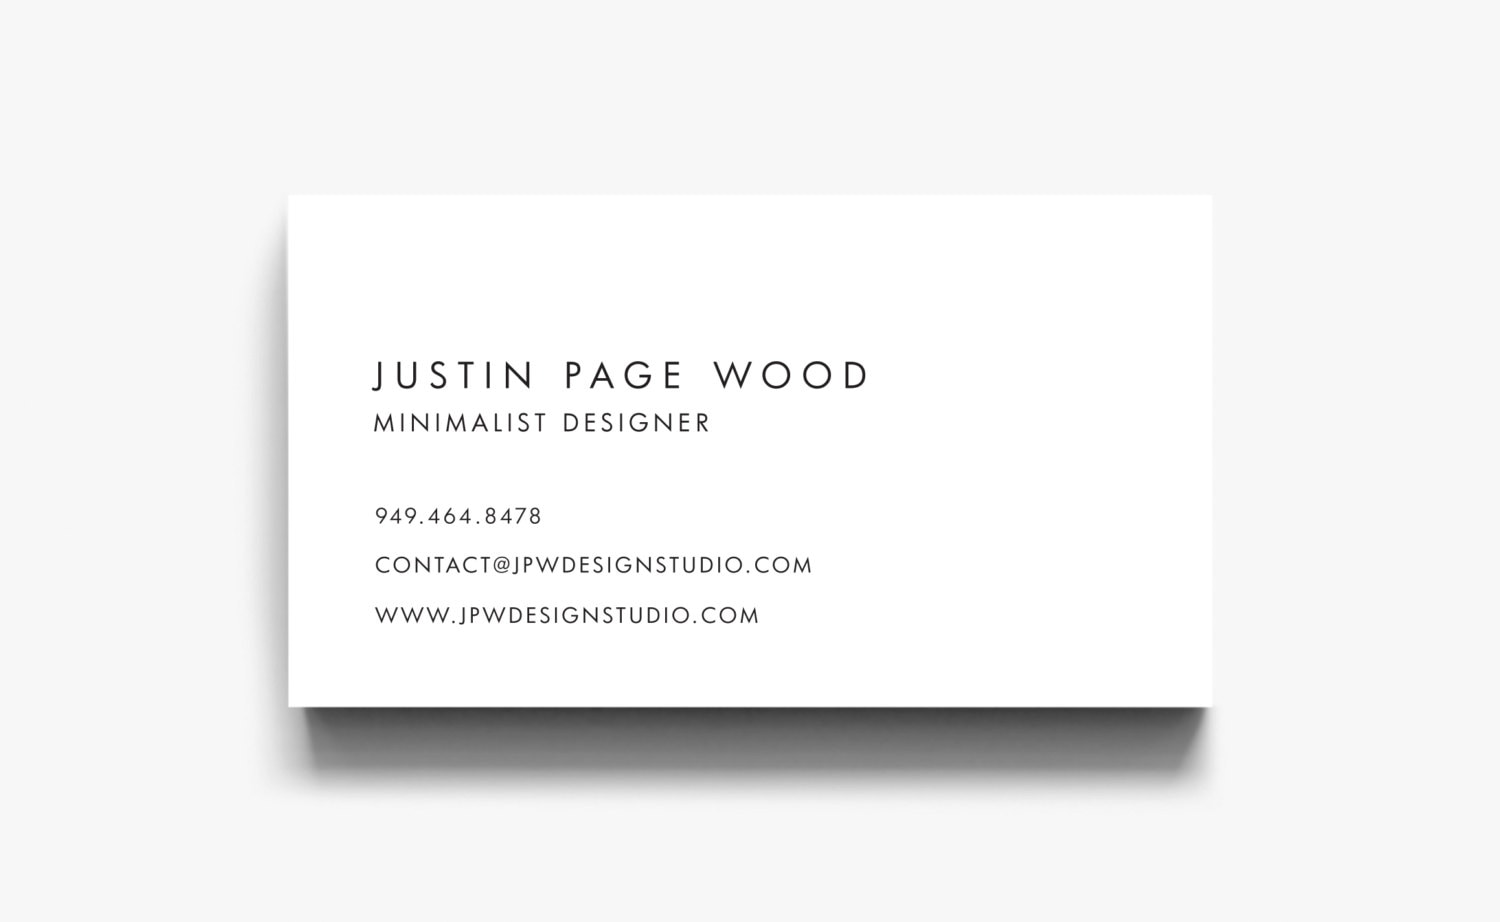 Business Card Design Business Card Template Calling Cards | Etsy